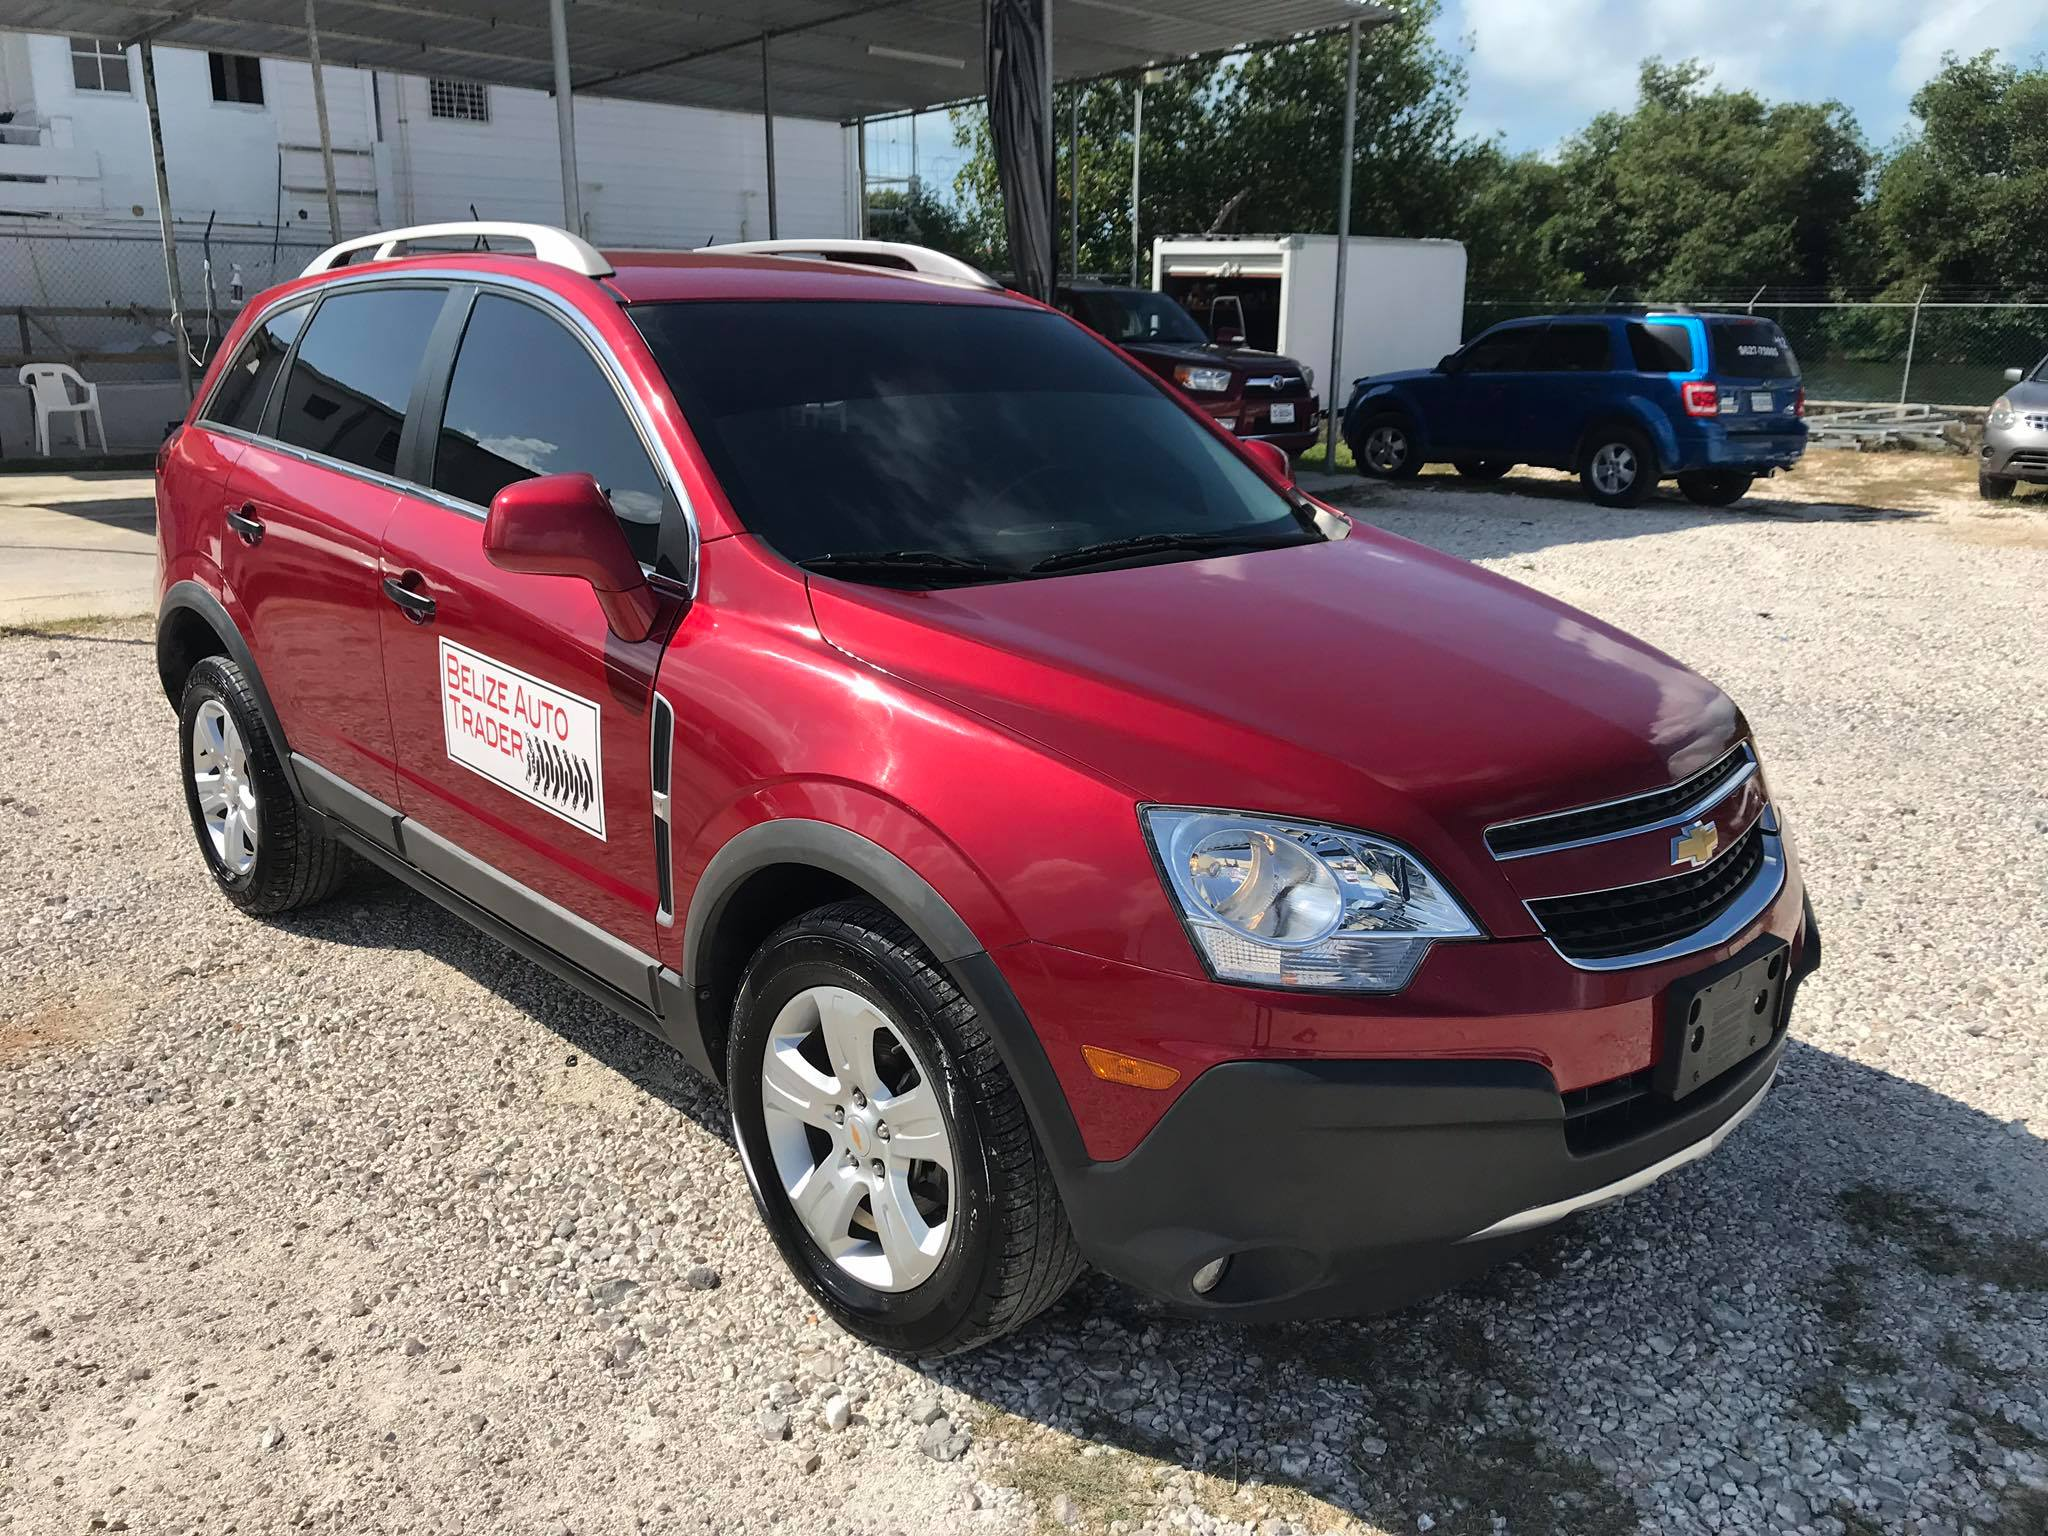 2014 CHEVY CAPTIVA